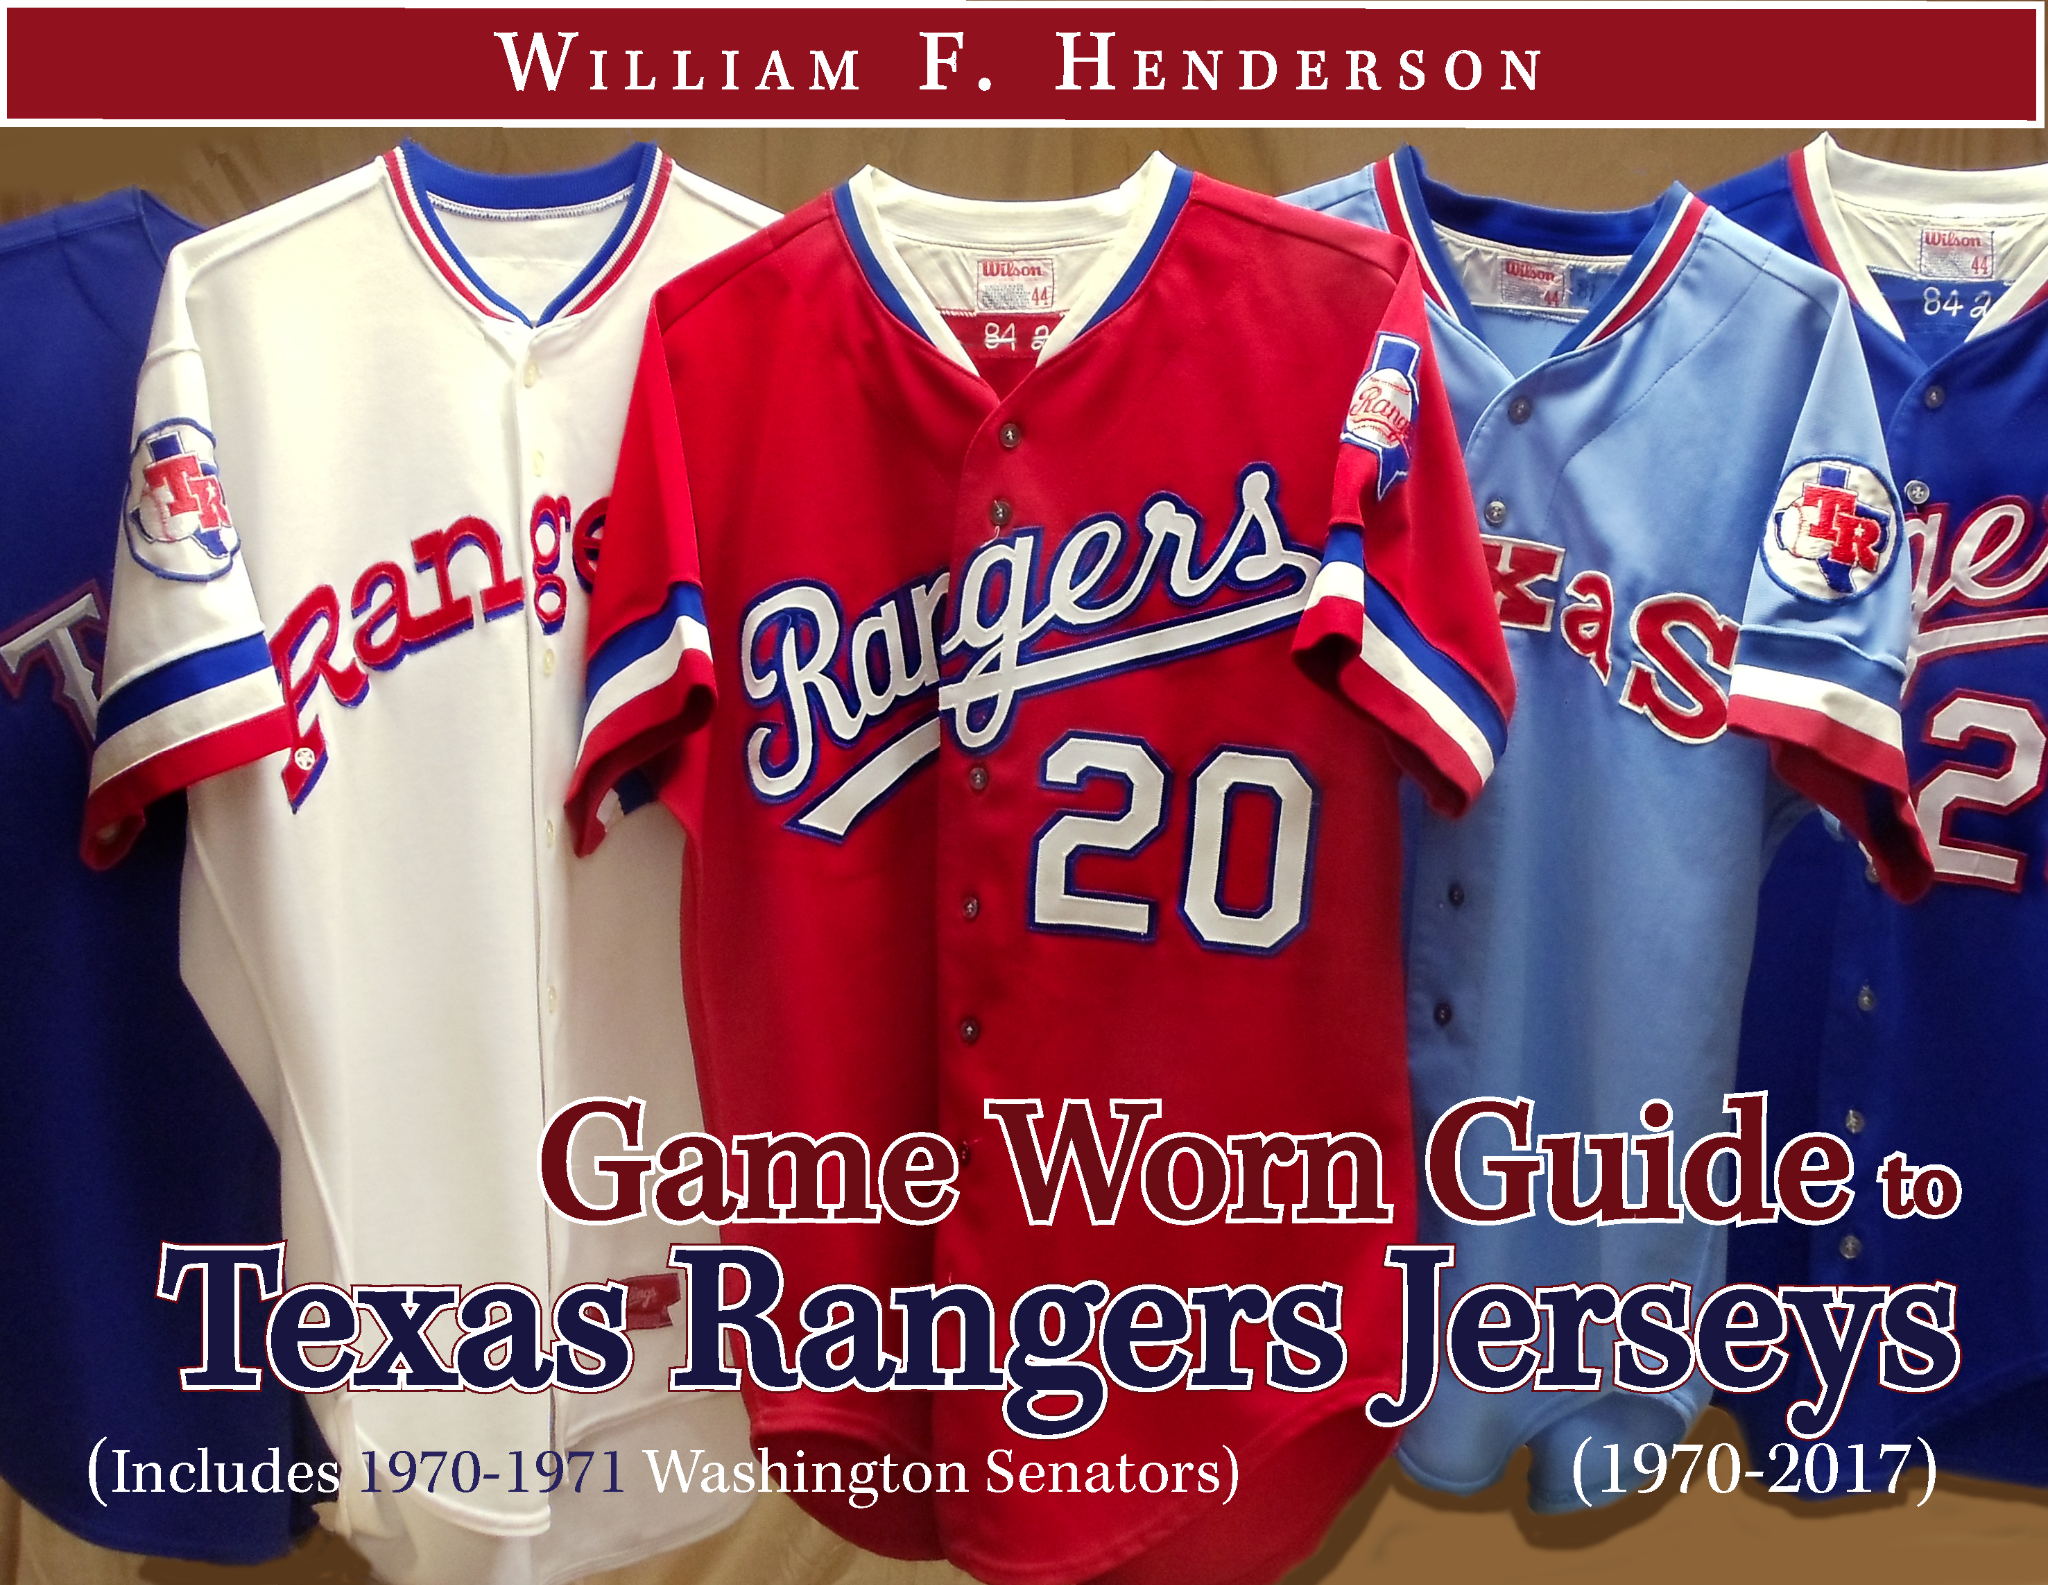 Game Worn Guide to Texas Rangers Jerseys (1972-2017)